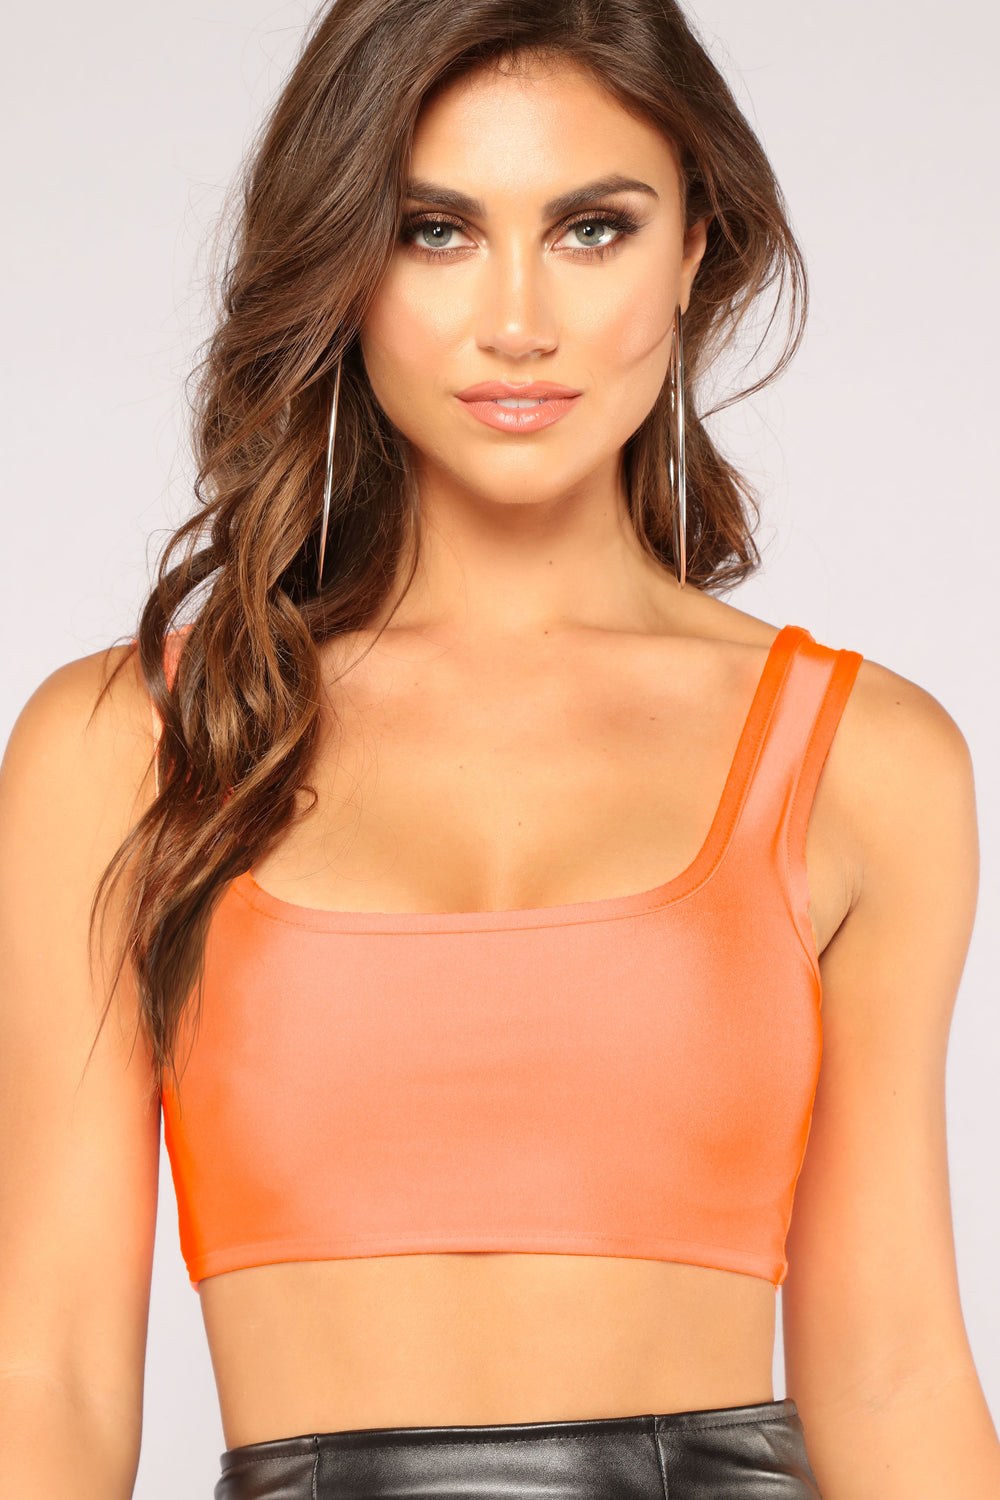 No More Chances Crop Top - Orange